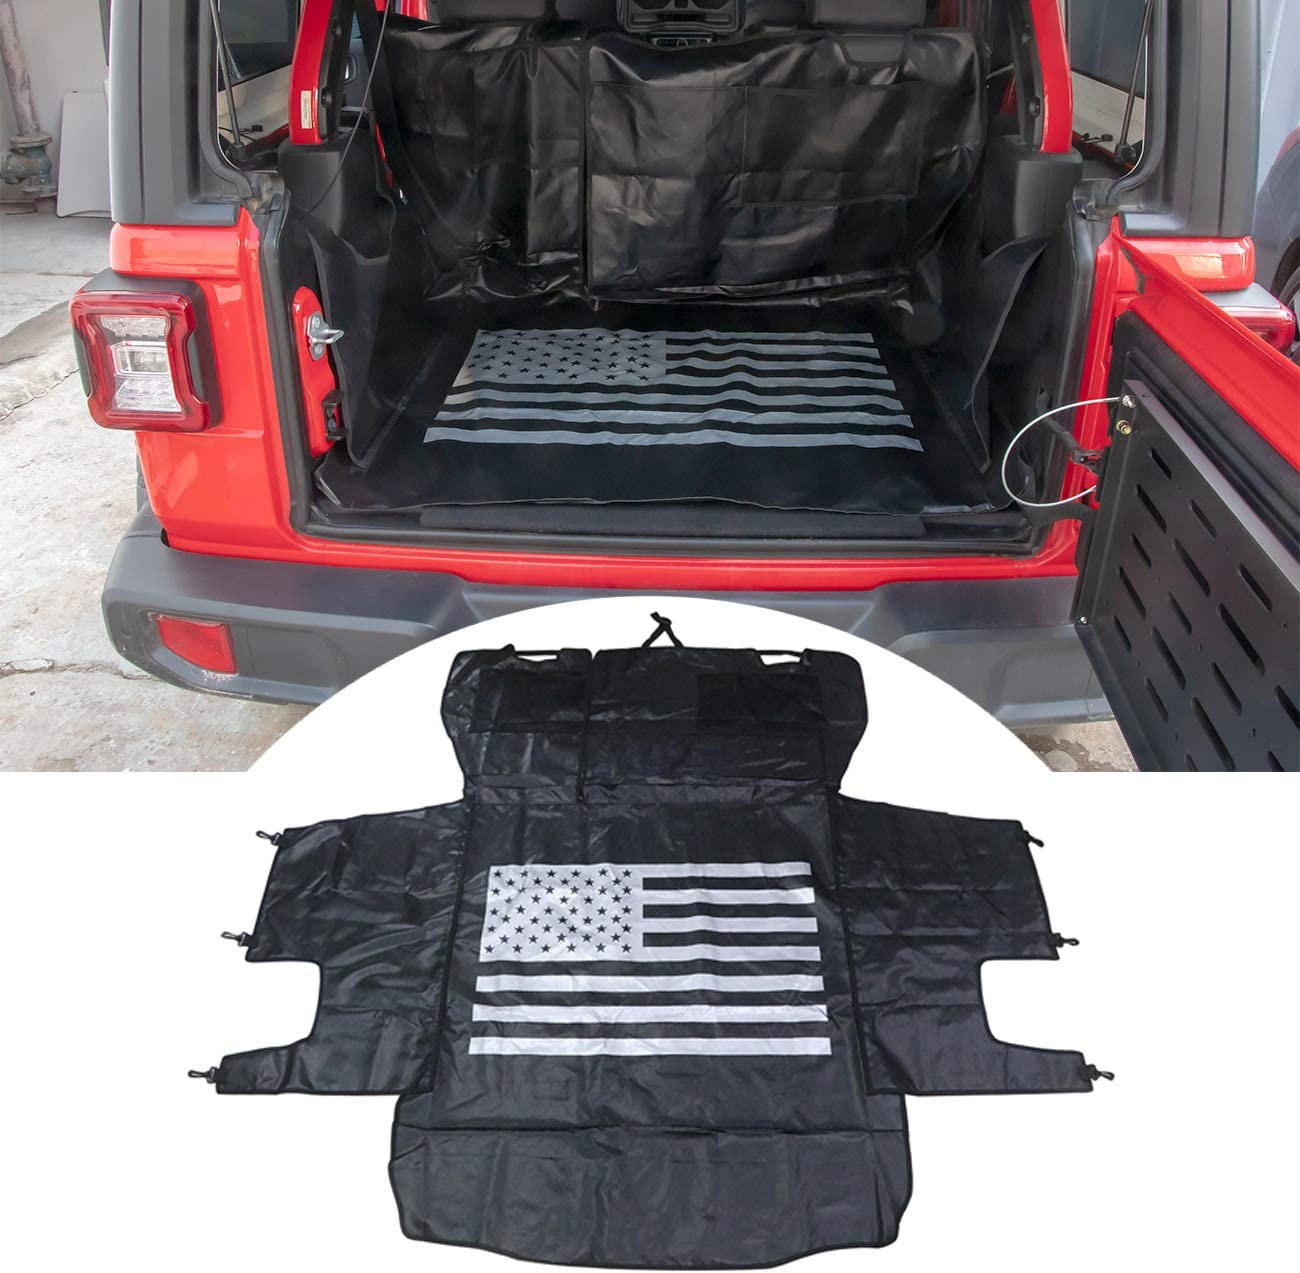 buyinhouse Pet Dog Cat Seat Cargo Liner Cover for Jeep Wrangler JK JL 2007-2020 4Door Large Size Hammock with Waterproof Stain-Resistant Non Slip Backing Heavy Duty Oxford